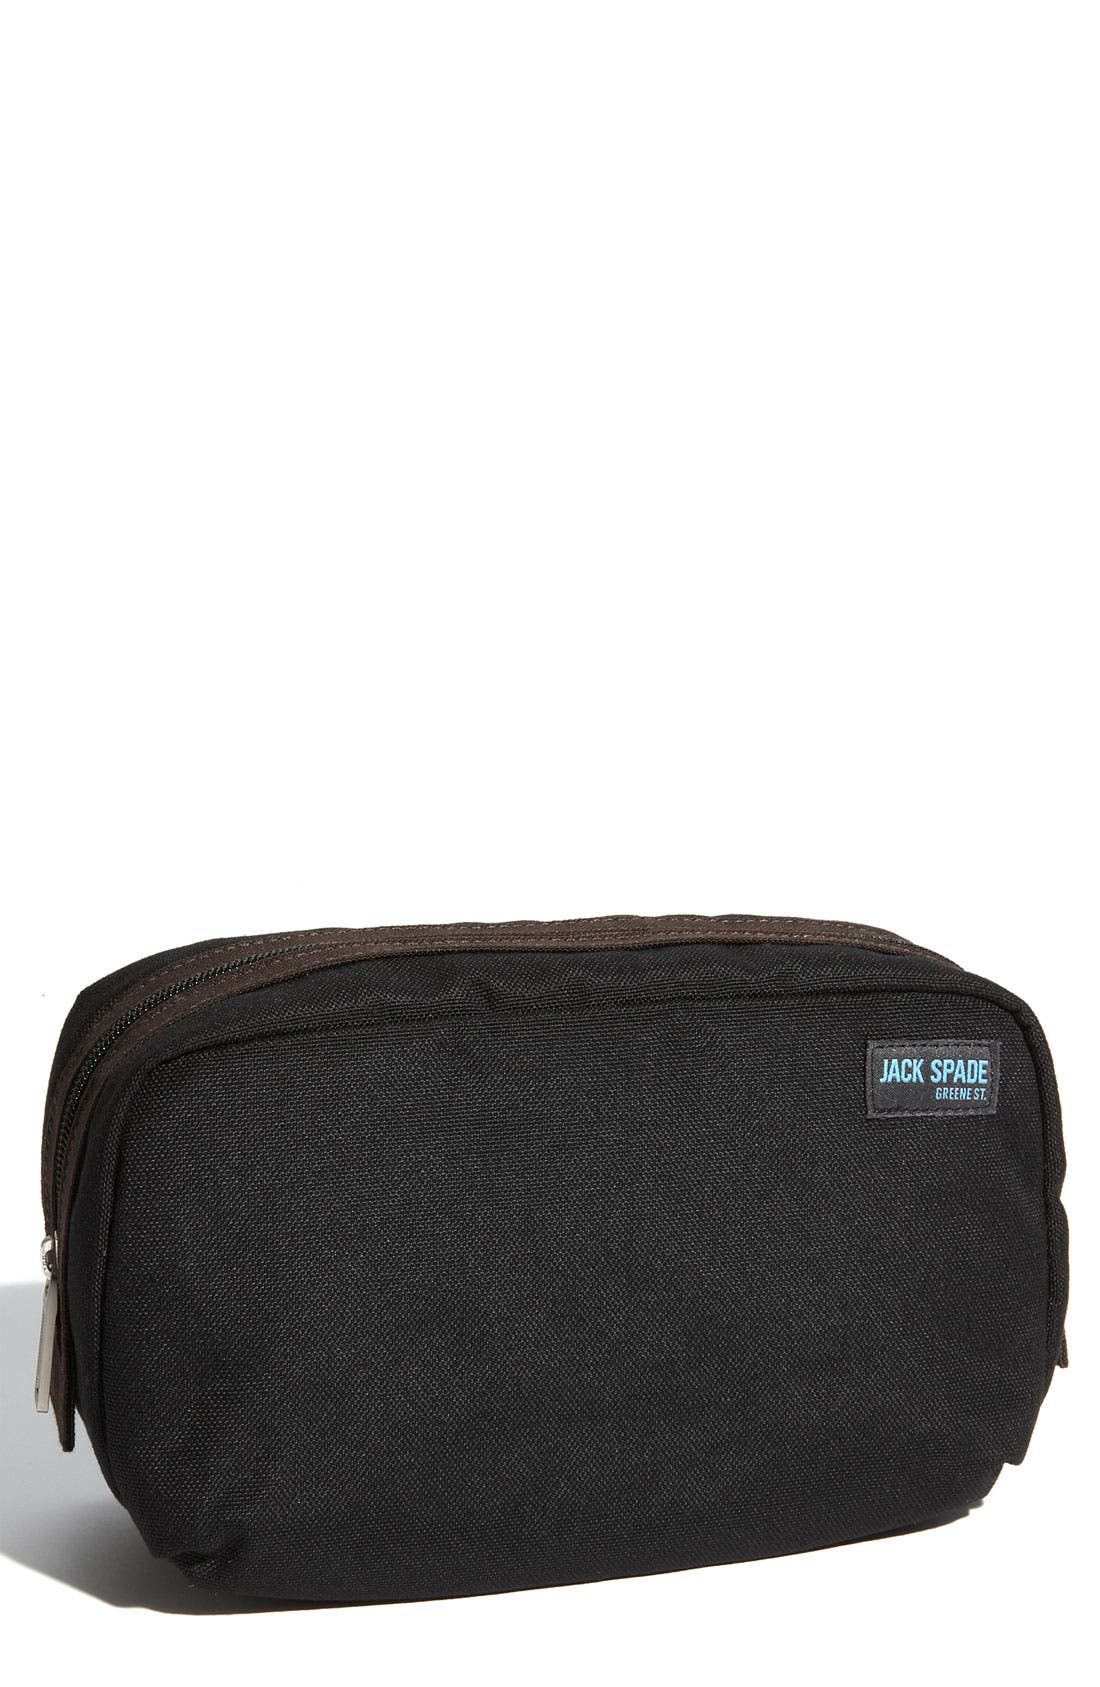 'Trad' Nylon Canvas Toiletry Bag, Main, color, 001